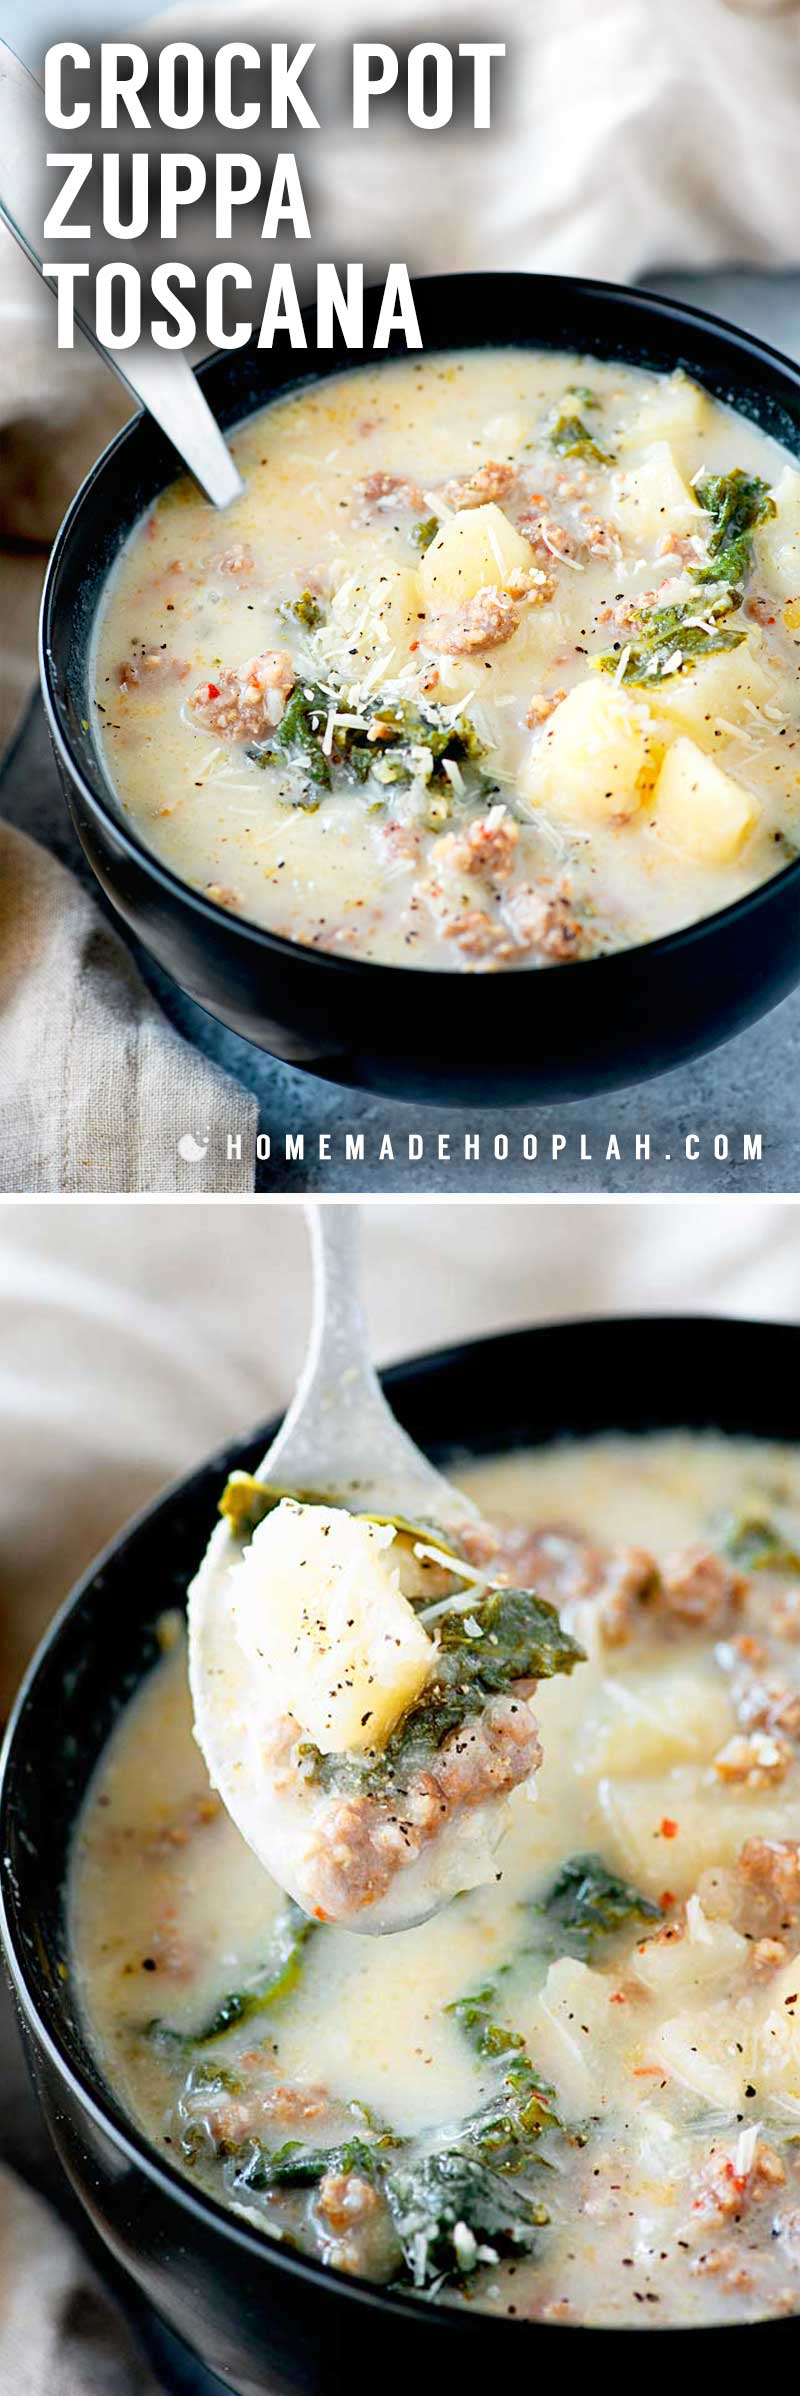 Crock Pot Zuppa Toscana! This crock pot zuppa toscana soup is an Olive Garden copycat recipe that makes it easy to bring the taste of Italy home. A simple dinner for busy weekdays! | HomemadeHooplah.com